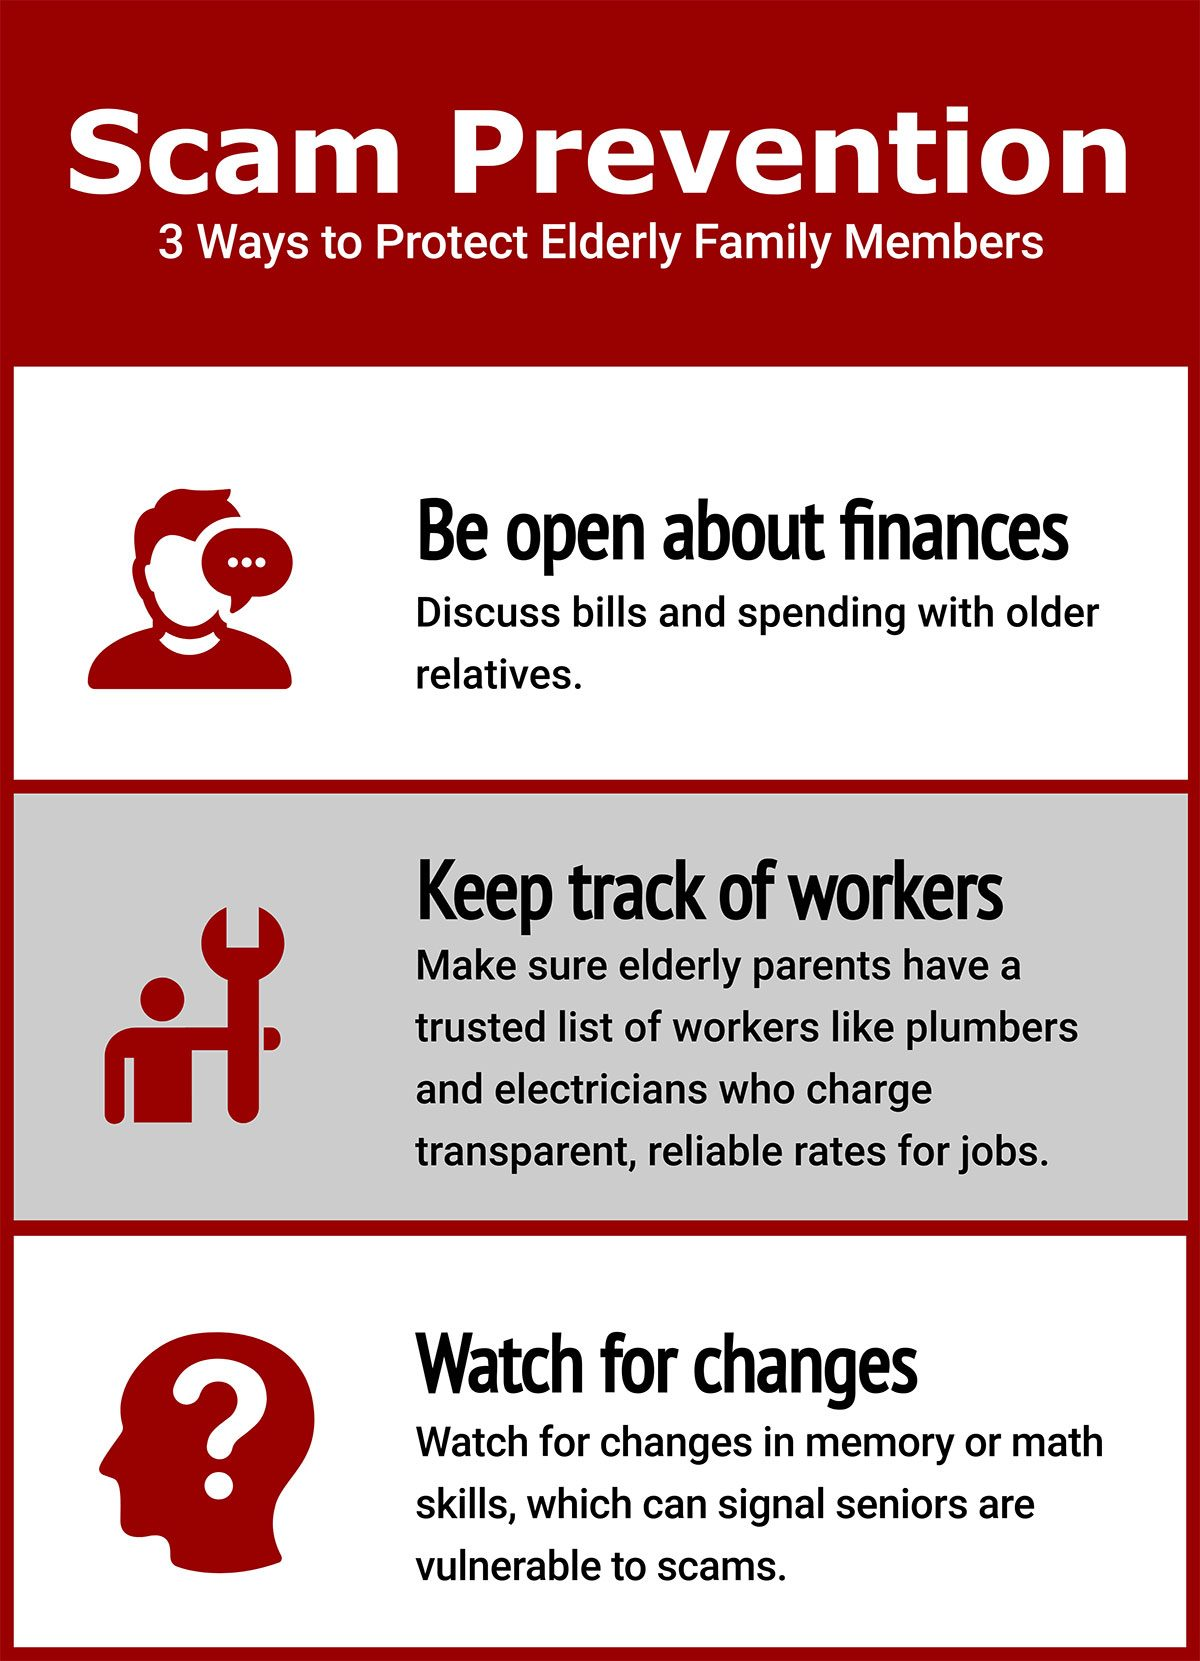 prevent senior scam tips graphic by USC